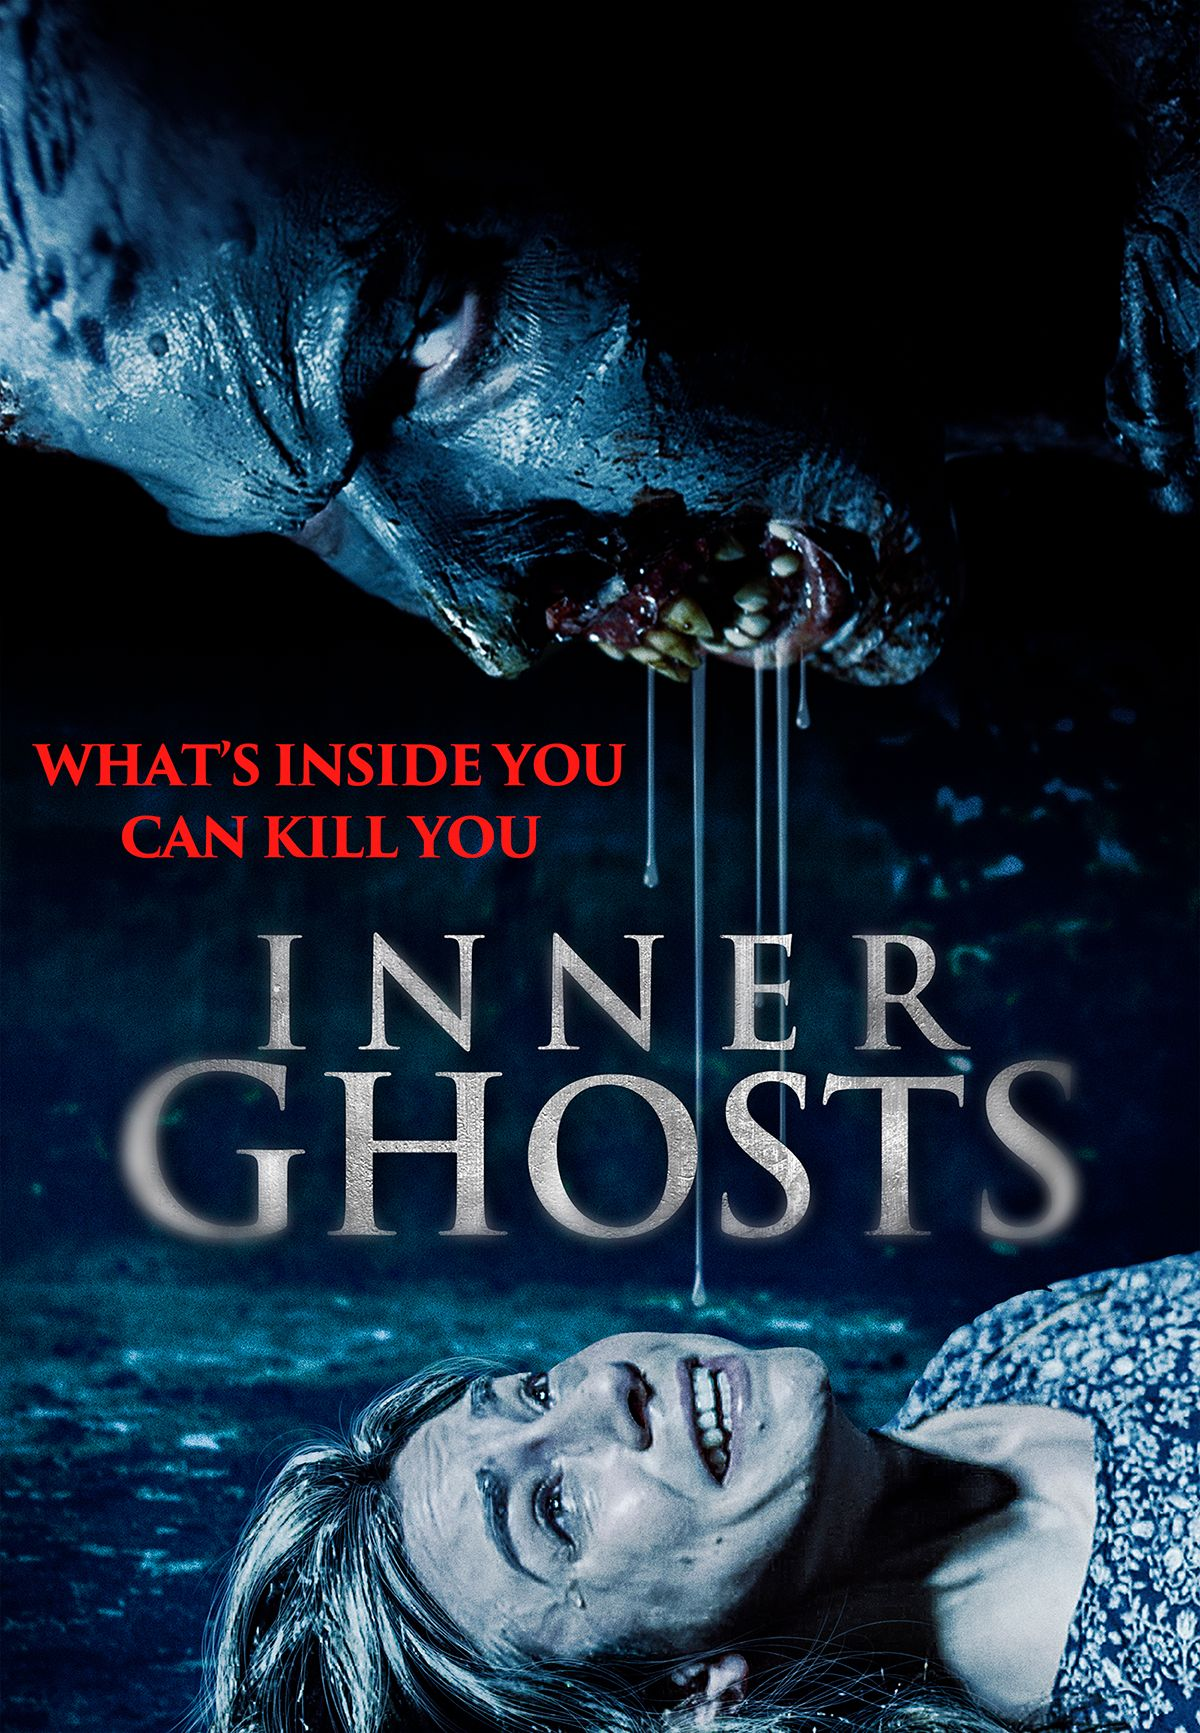 Inner Ghosts Poster